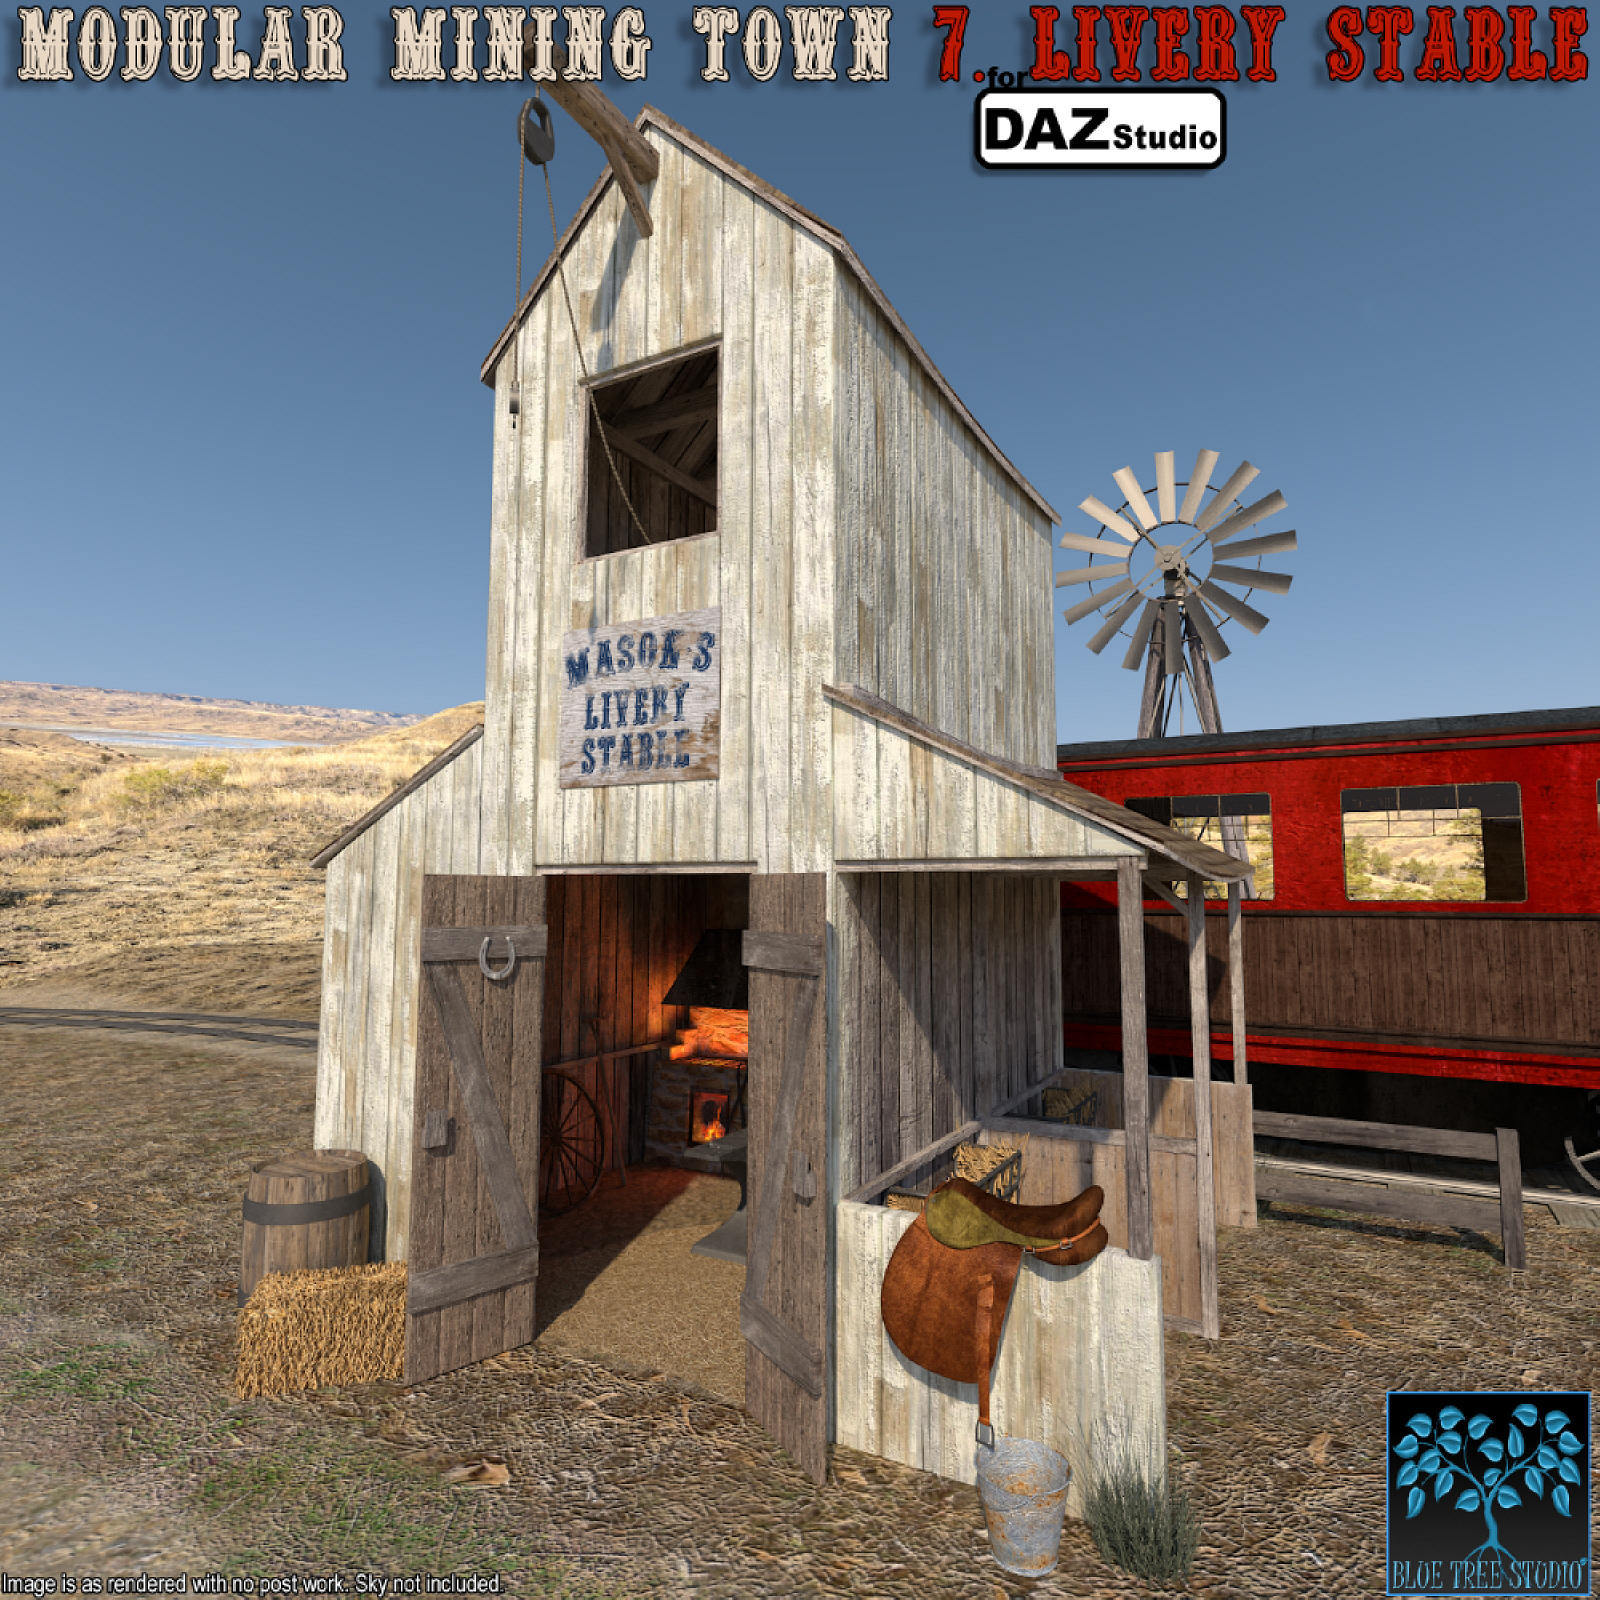 Modular Mining Town: 7. Livery Stable for Daz by BlueTreeStudio